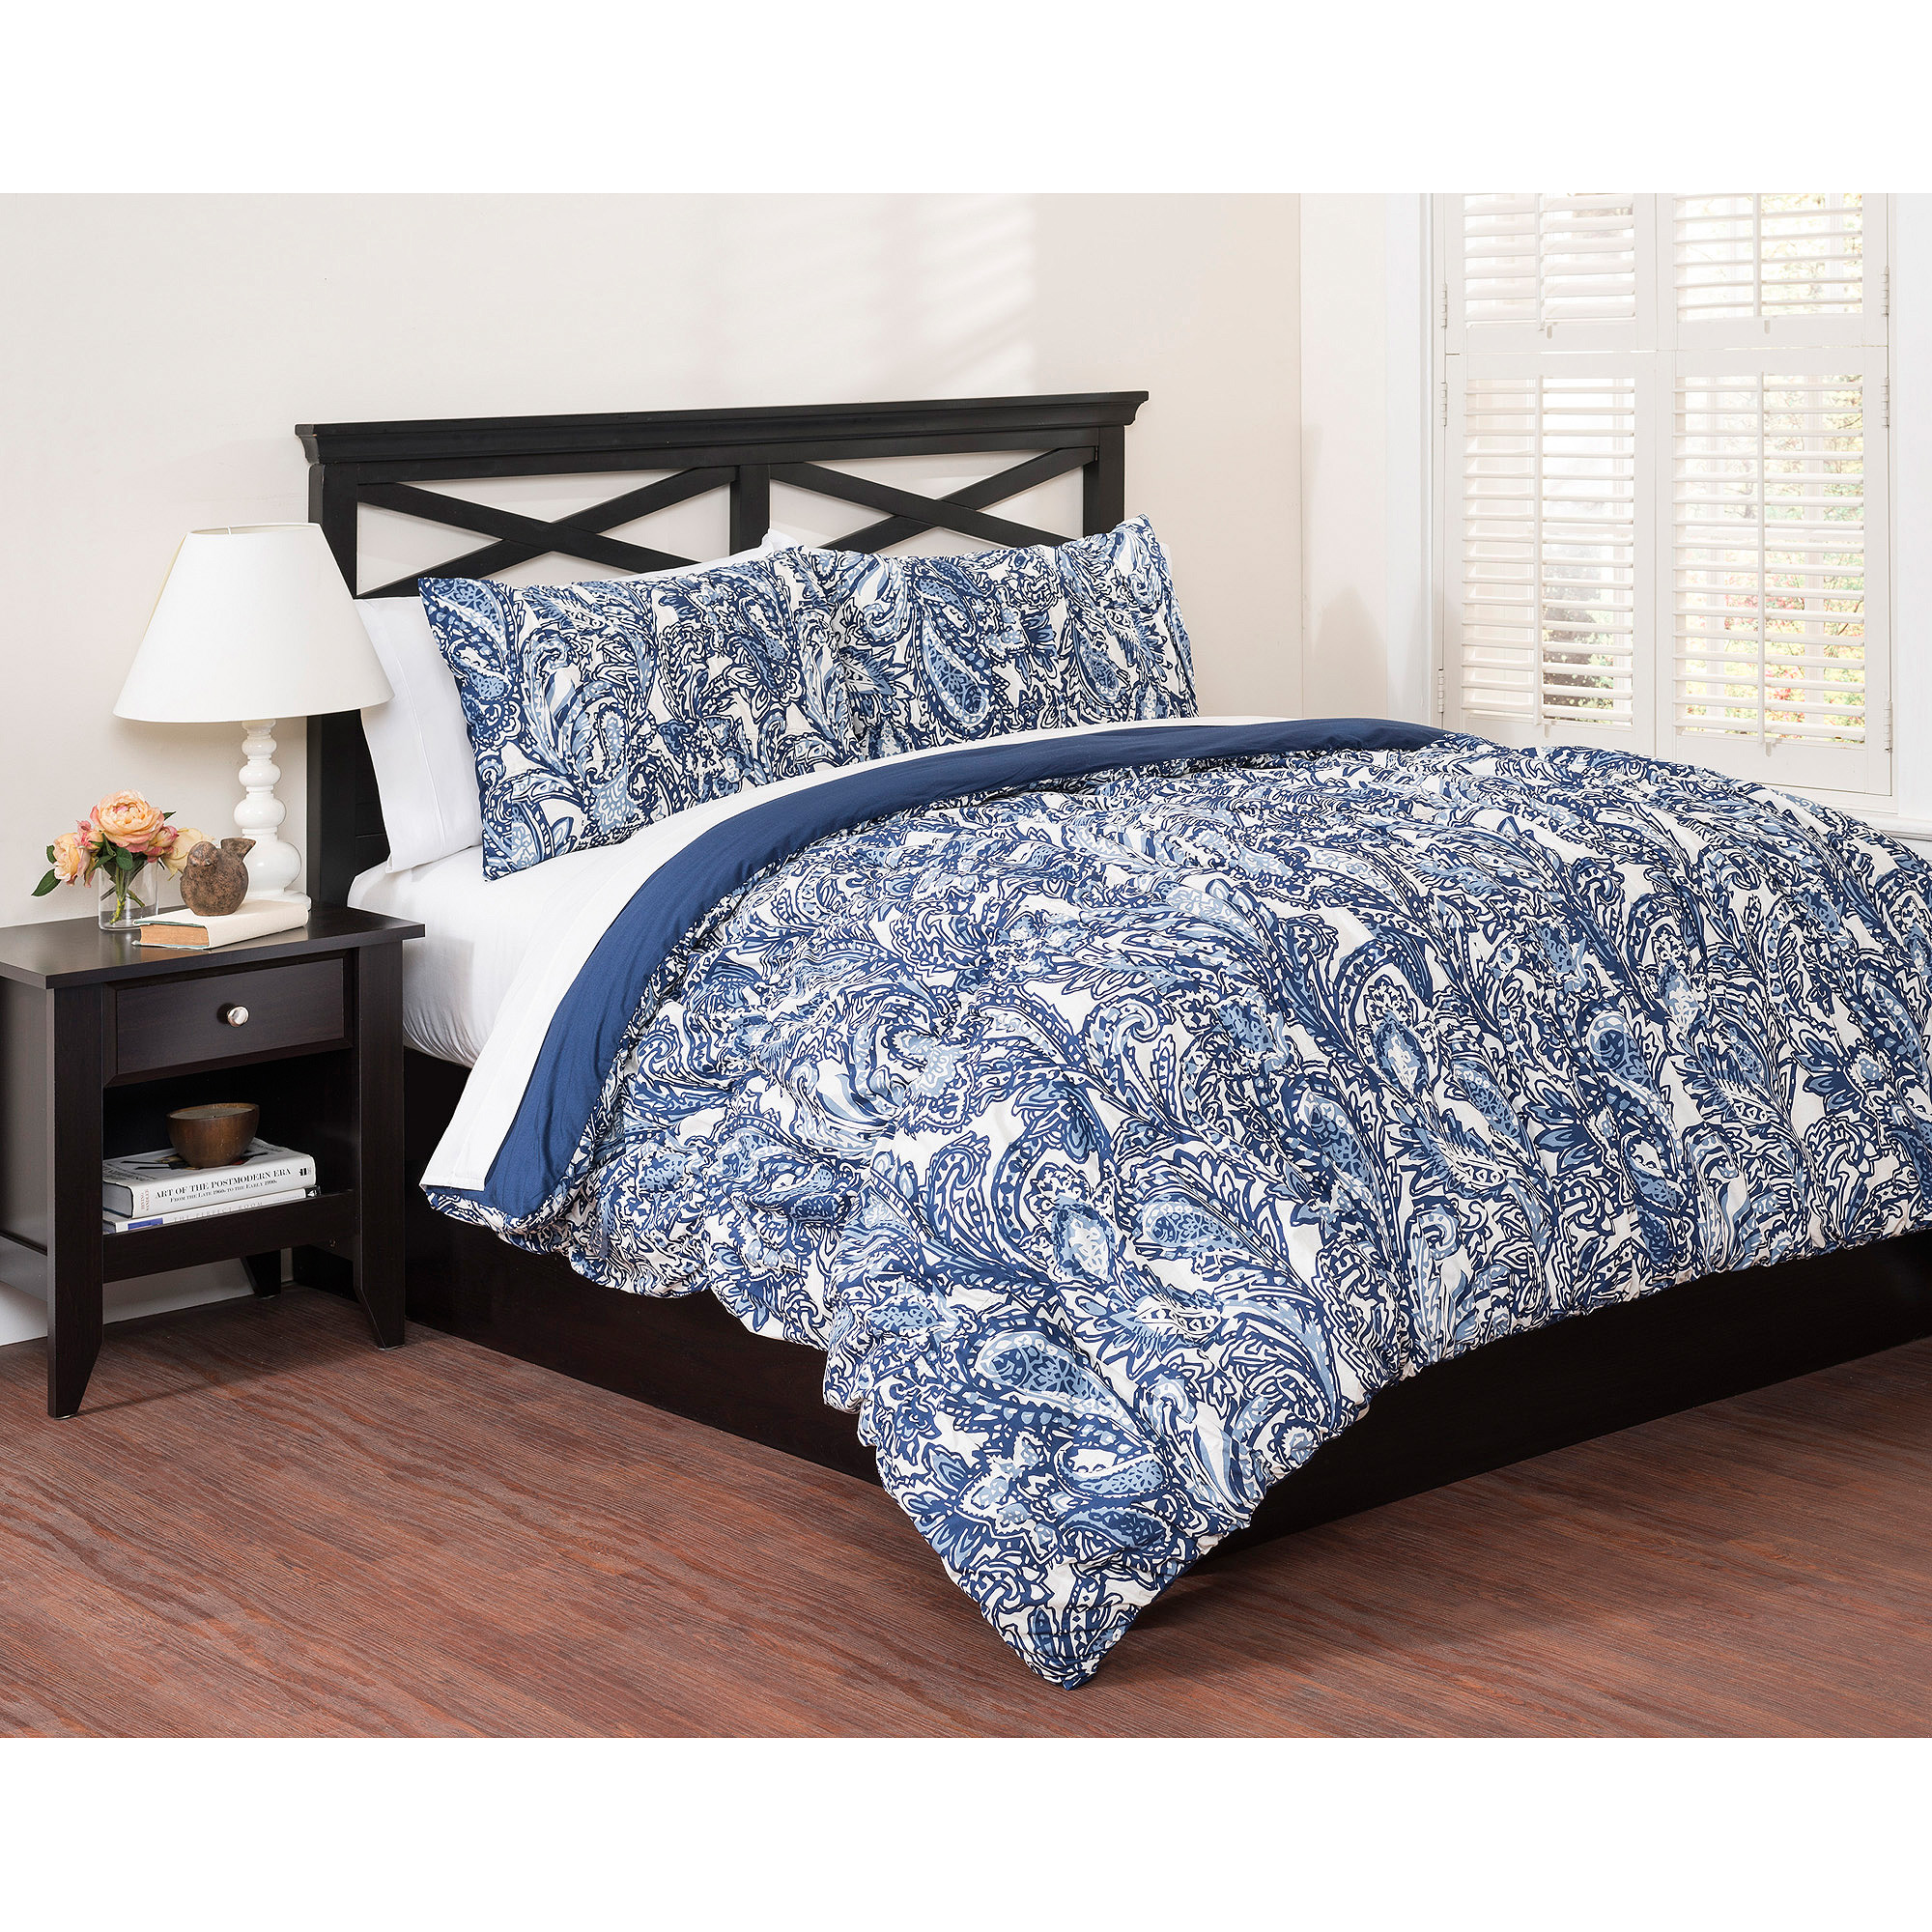 seaglass click blue comforter paisley bed to pastel pc comforters set multi expand p